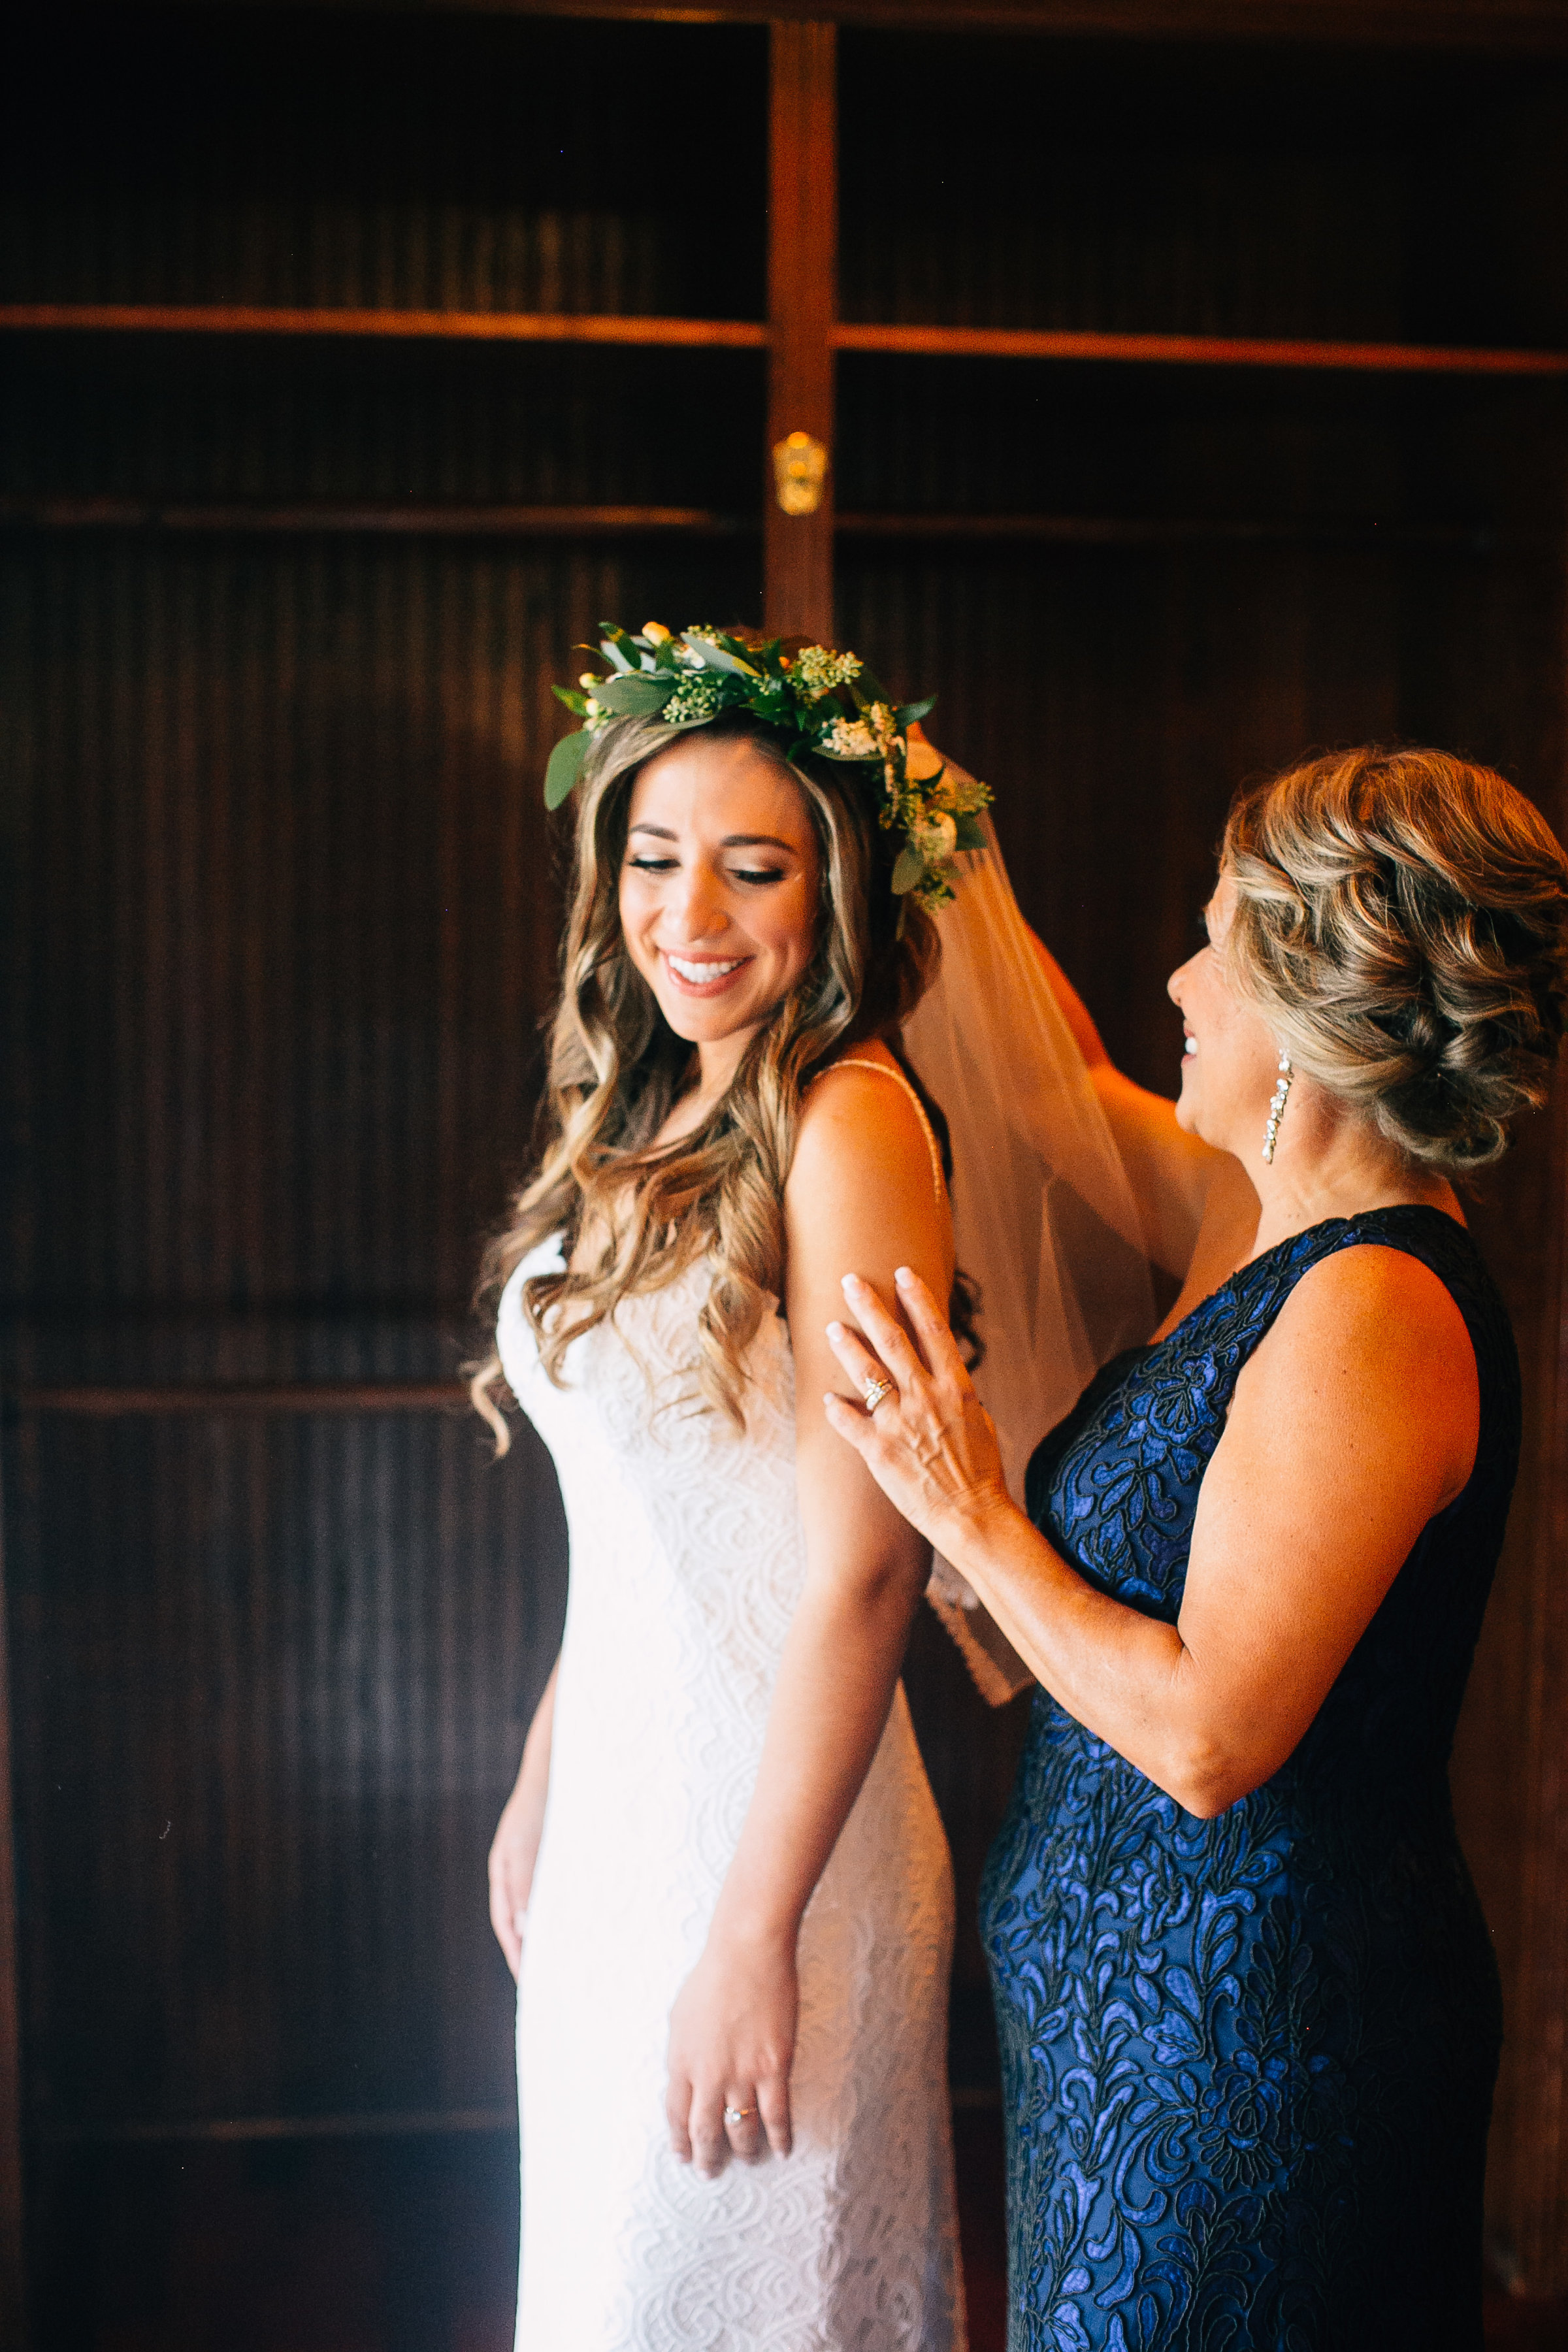 Bride with flowercrown getting dressed photos with mother of the bride